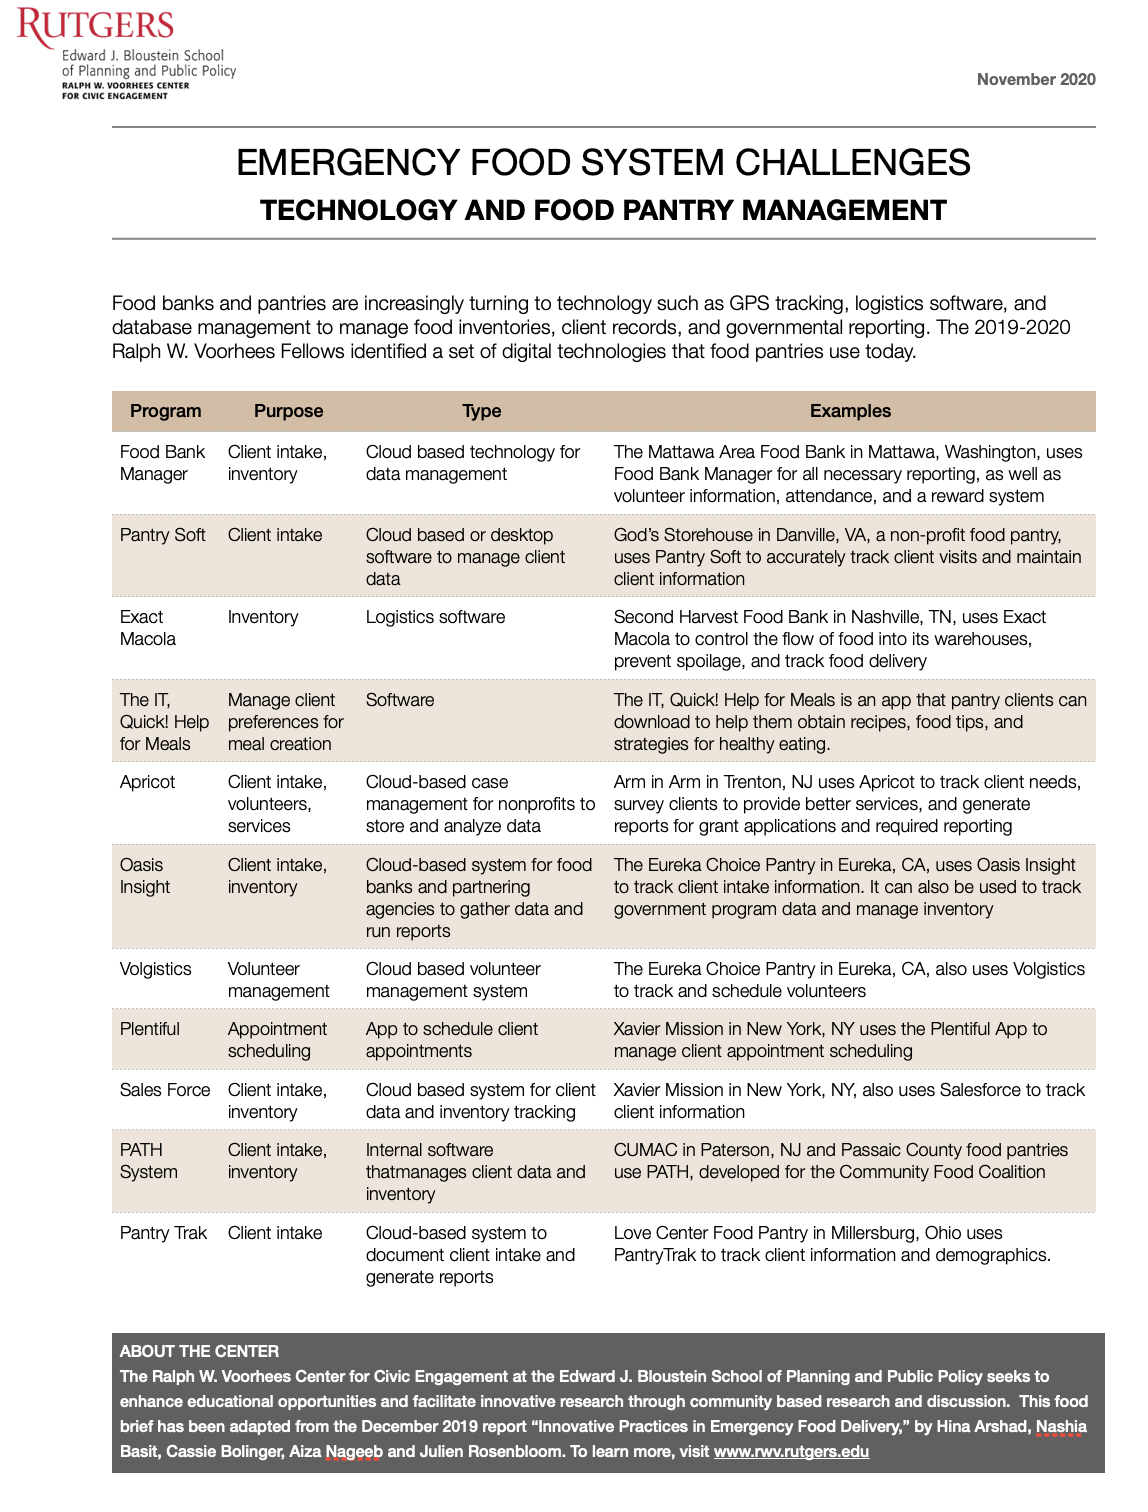 food brief on technology use in food pantries